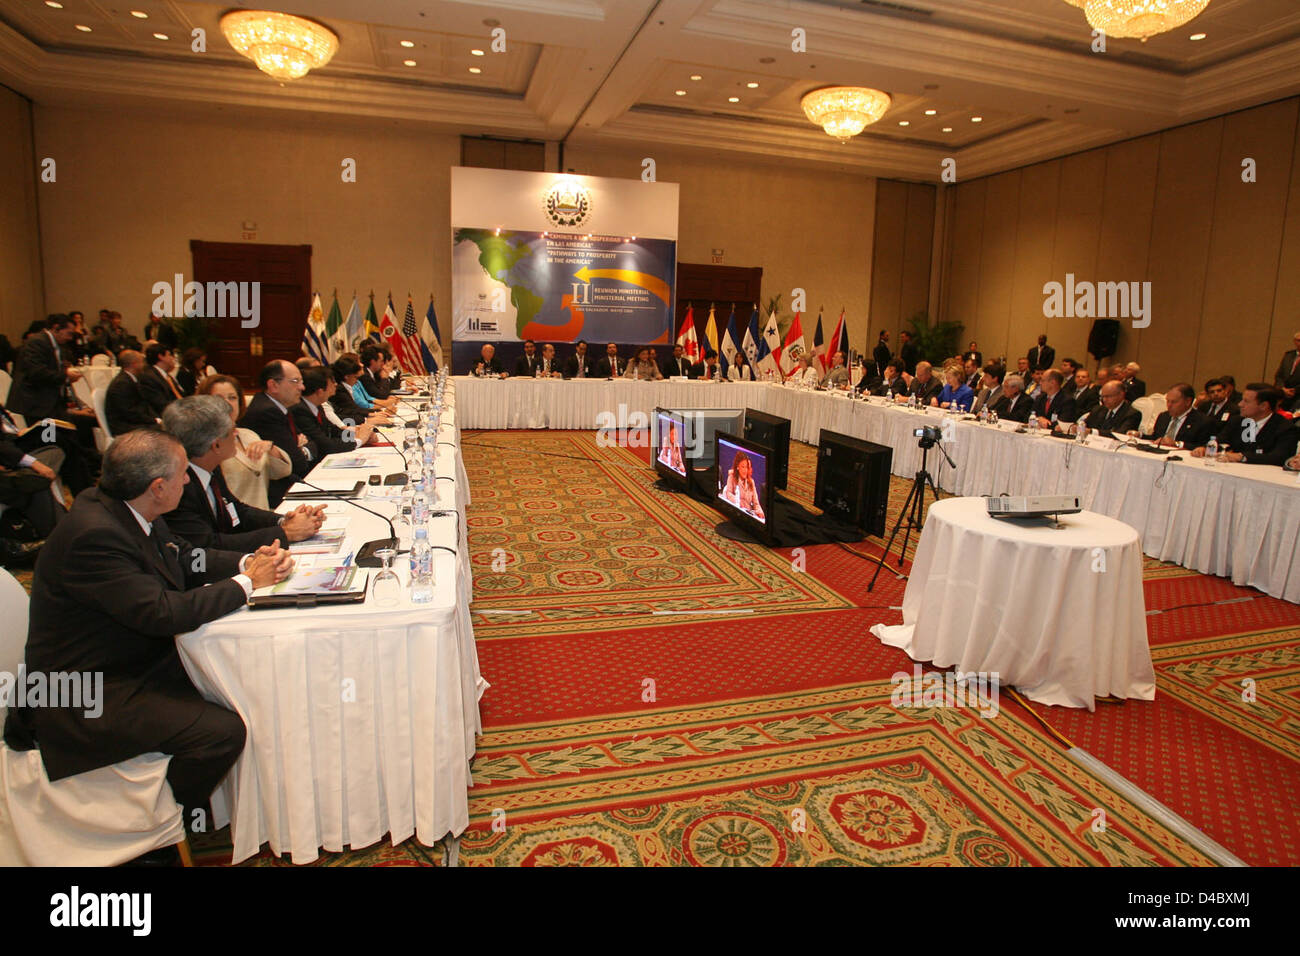 Second Pathways to Prosperity Ministerial Meeting - Stock Image